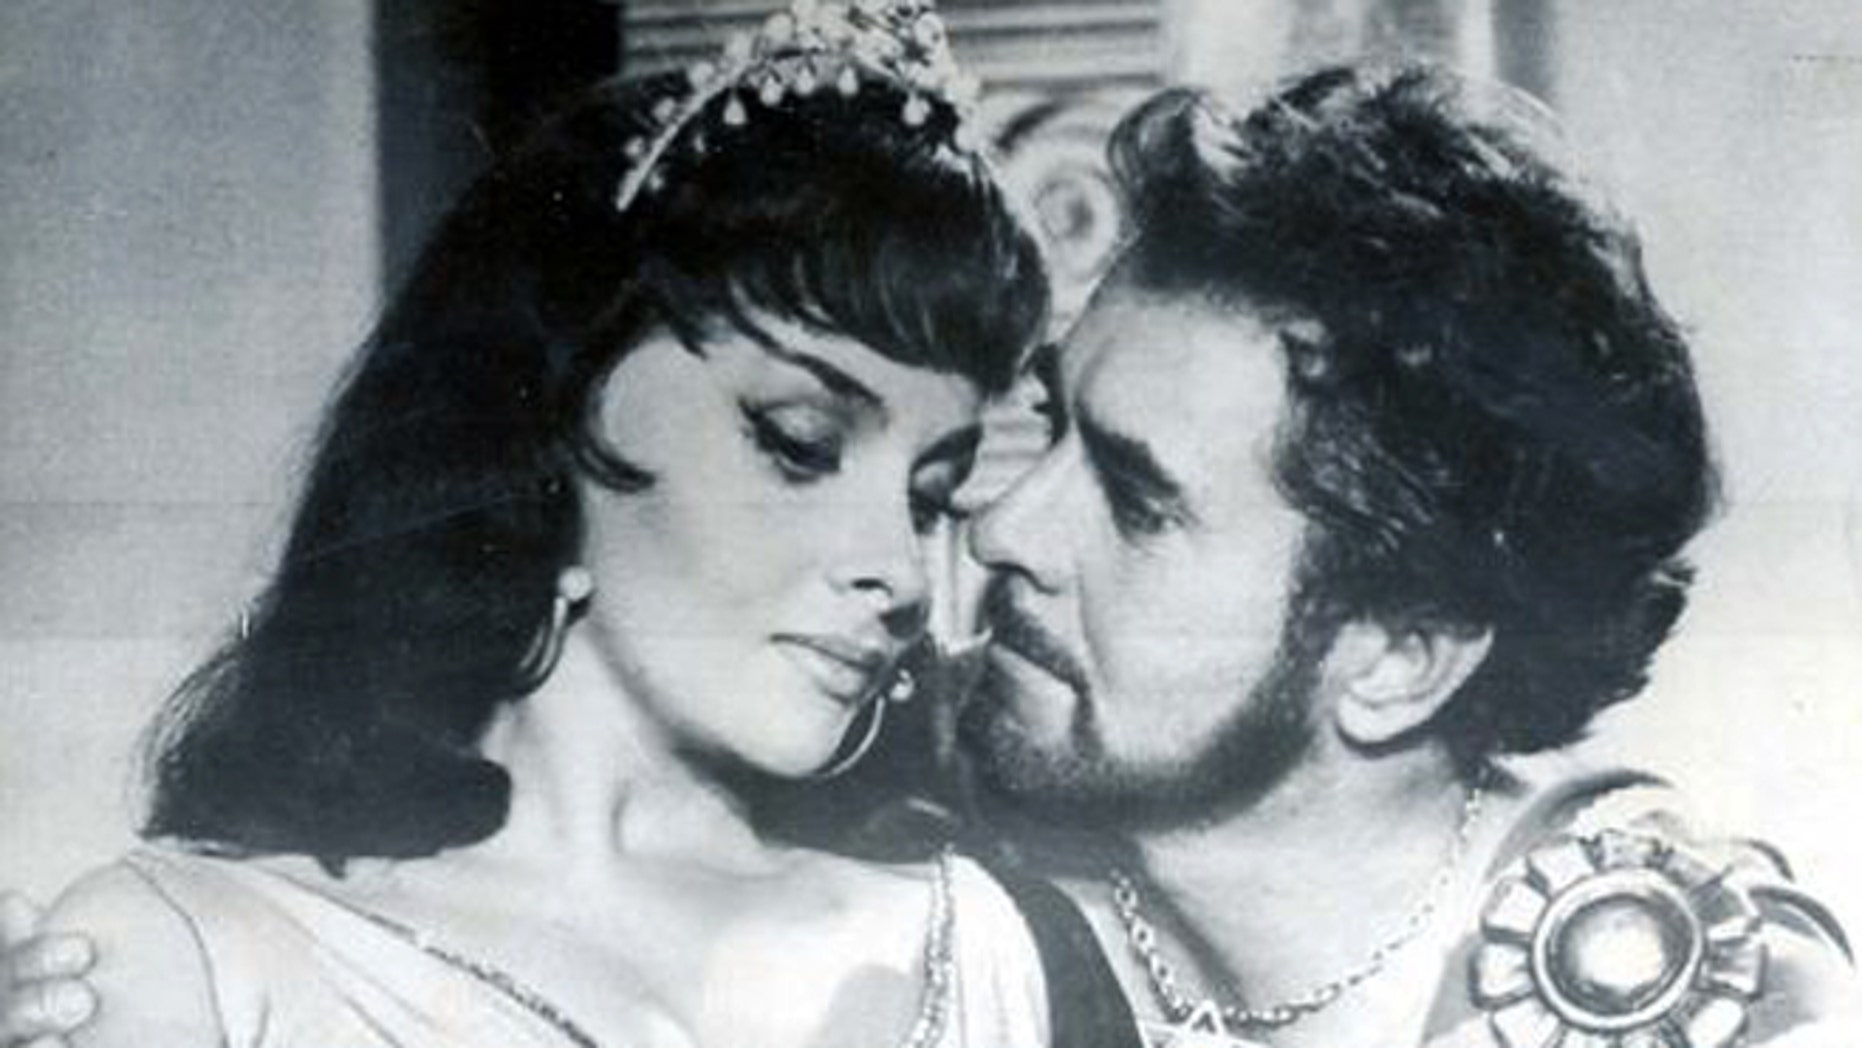 """Gina Lollobrigida plays the Queen of Sheba in the 1959 film """"Solomon and Sheba,"""" beside Tyrone Power as King Solomon."""